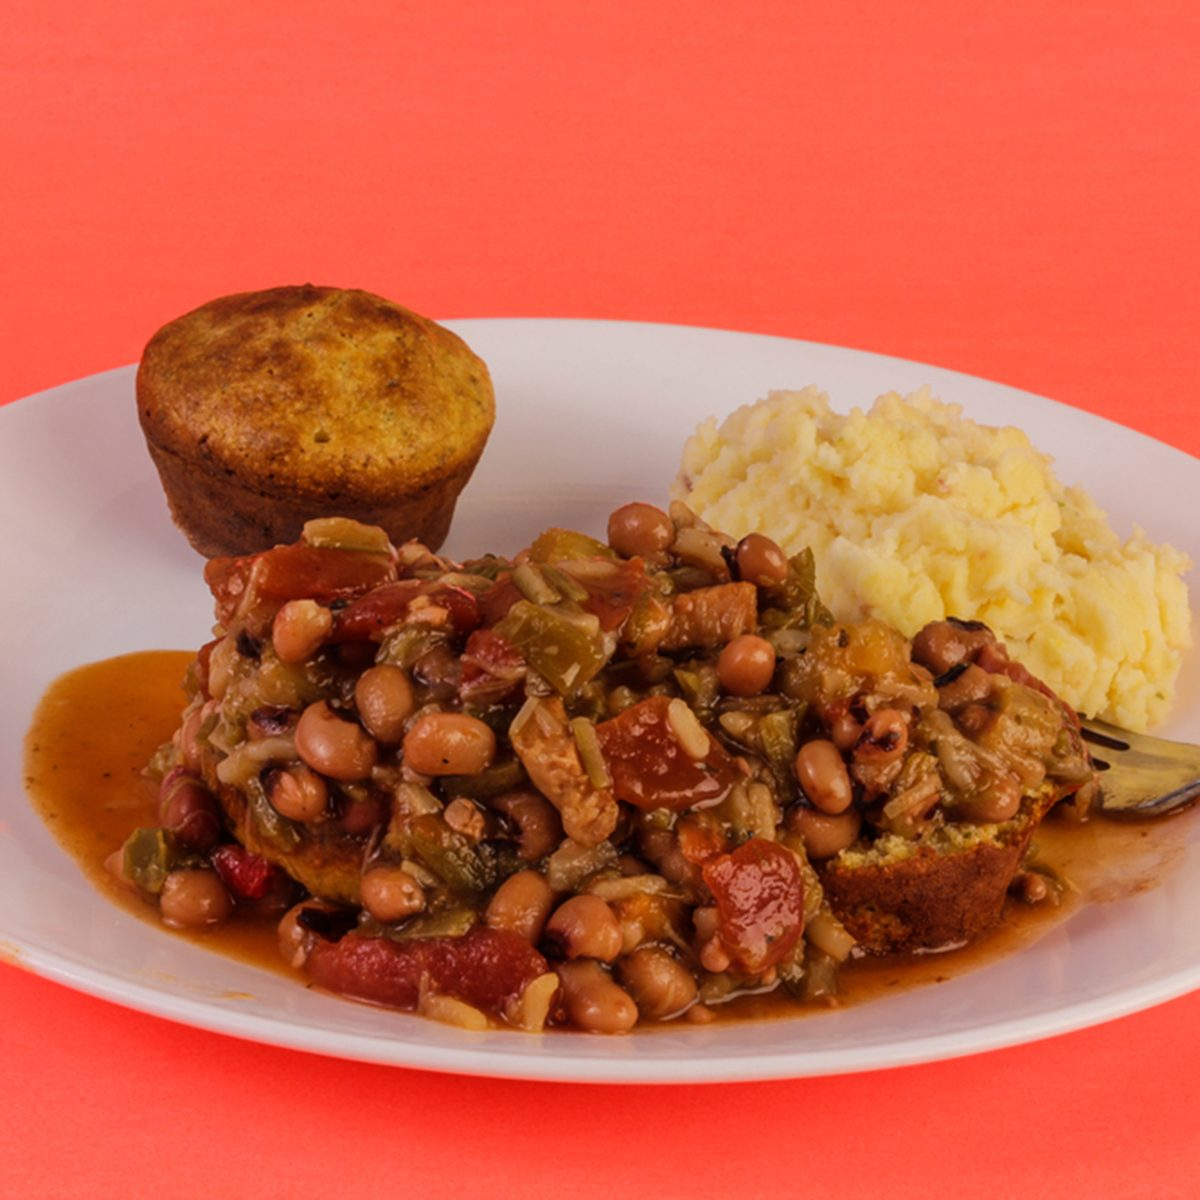 Creole Chicken Gumbo on white plate with mashed potatoes and cornbread against red background.